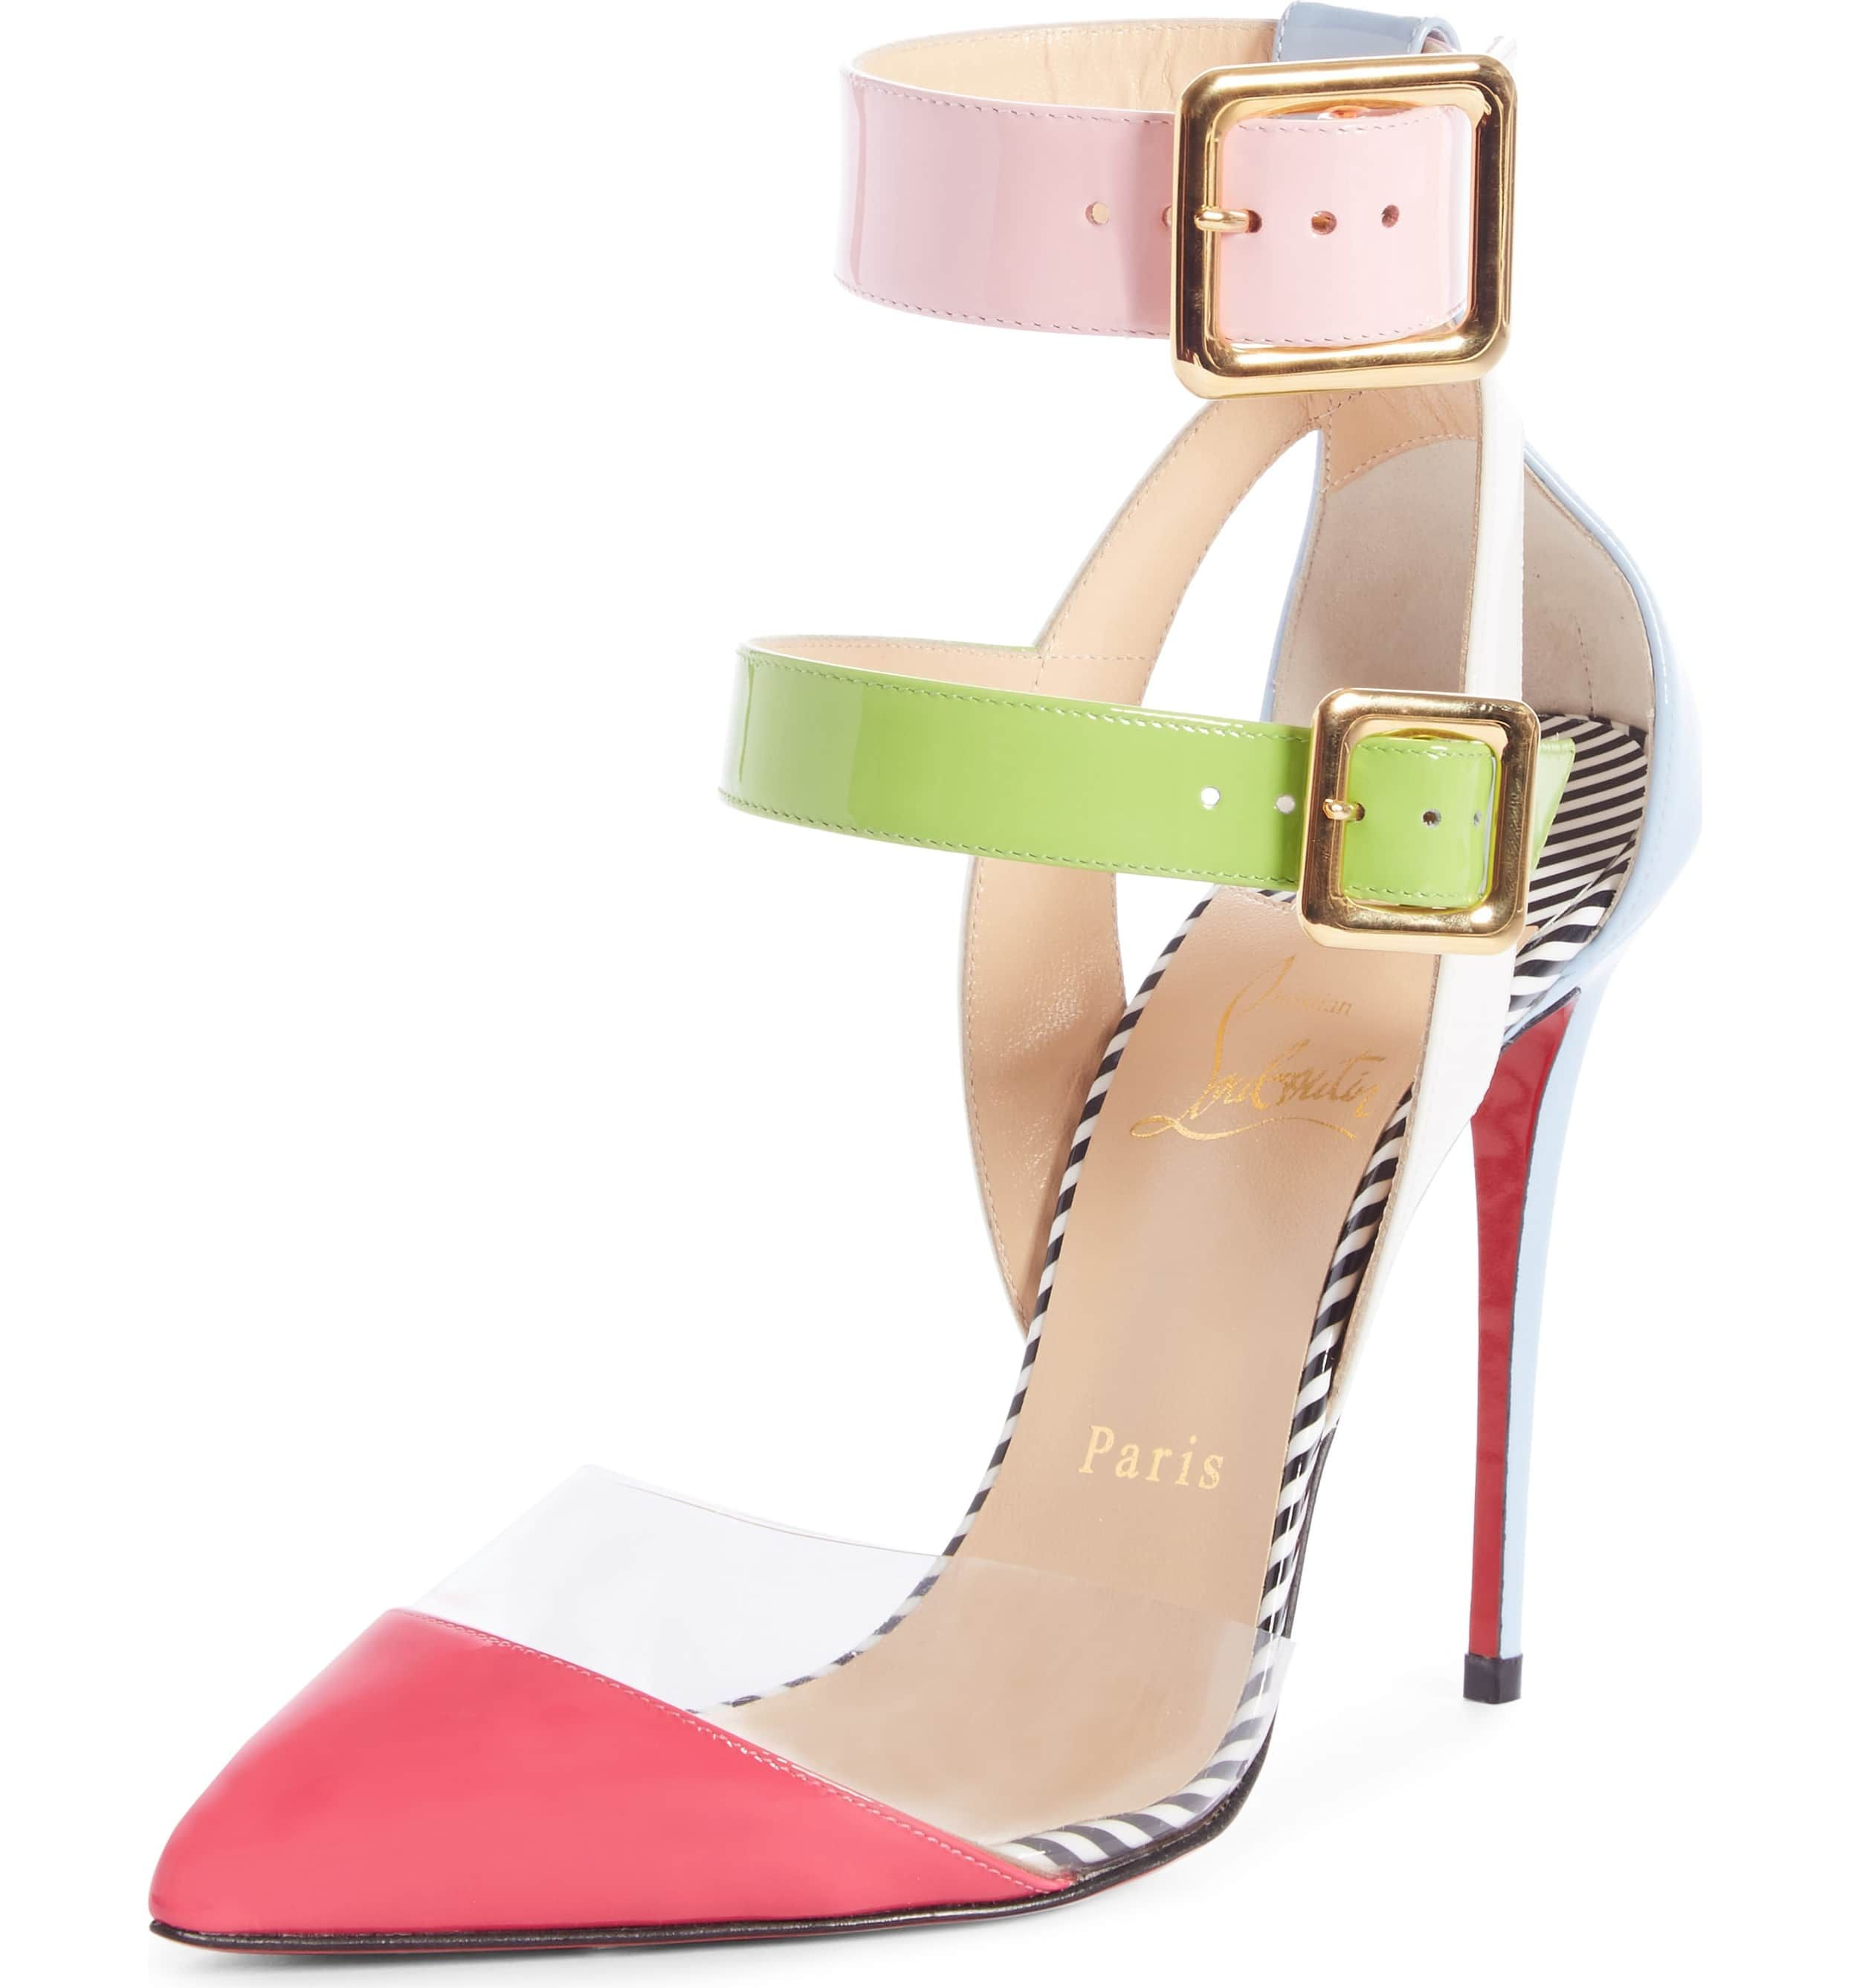 timeless design f4831 f27cb Christian Louboutin Multimiss Buckle Sandal | Shoes - Heels ...